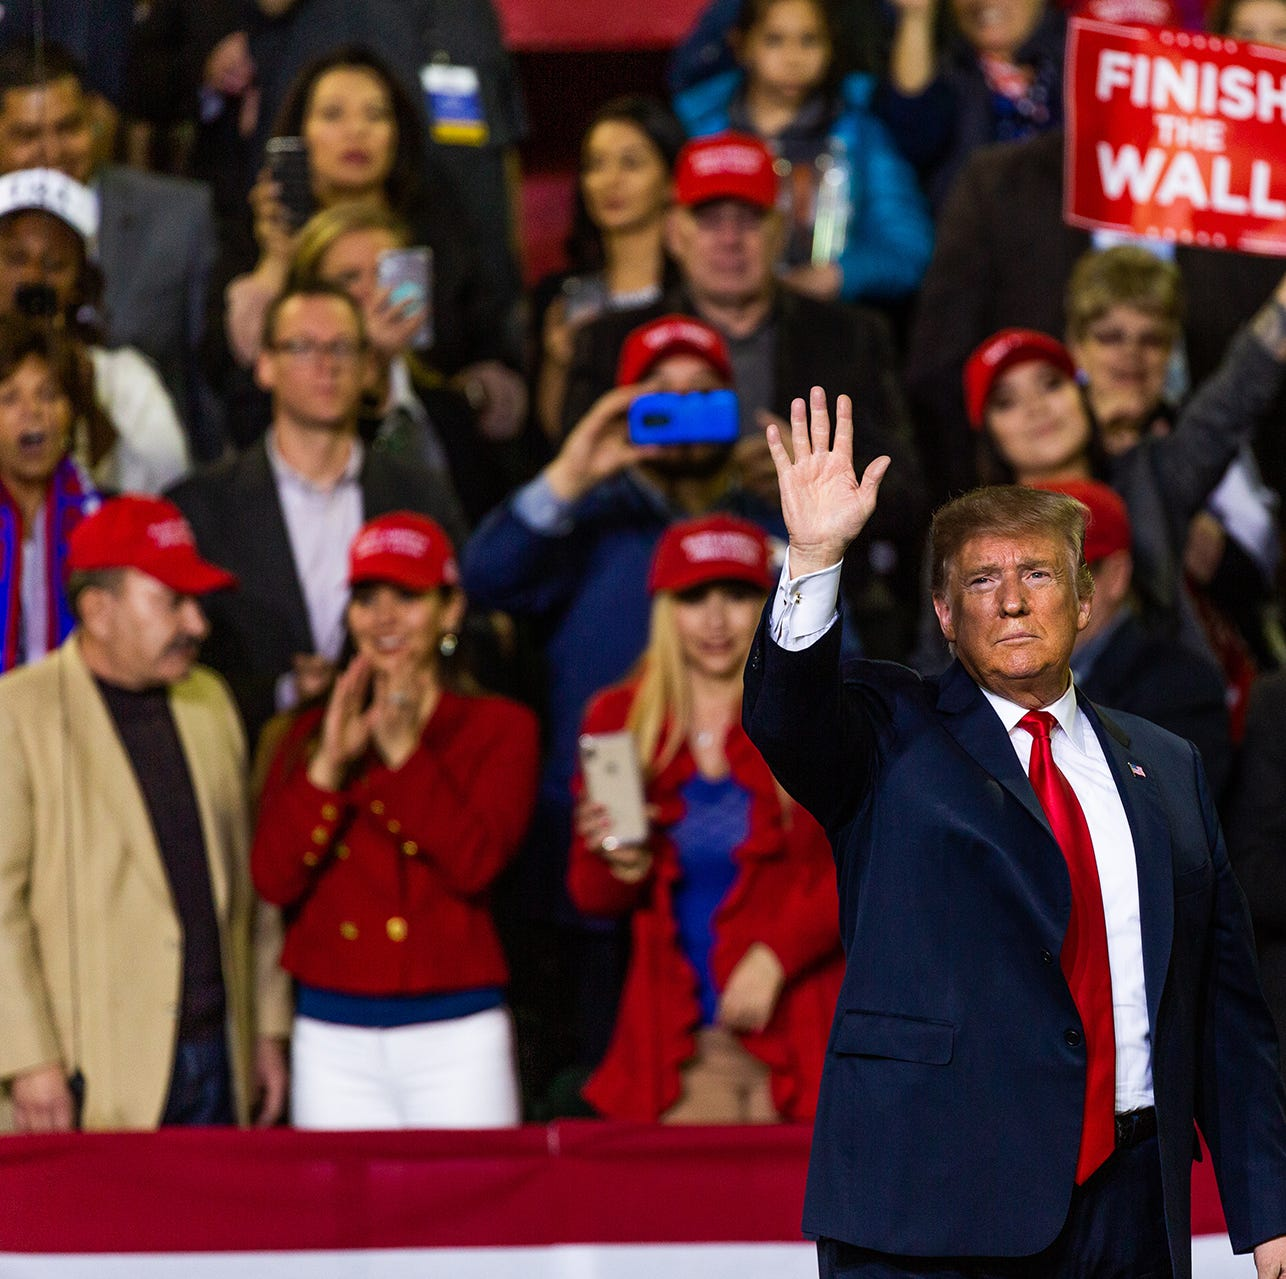 El Paso failed on welcoming President Donald Trump on day of rally: Reader